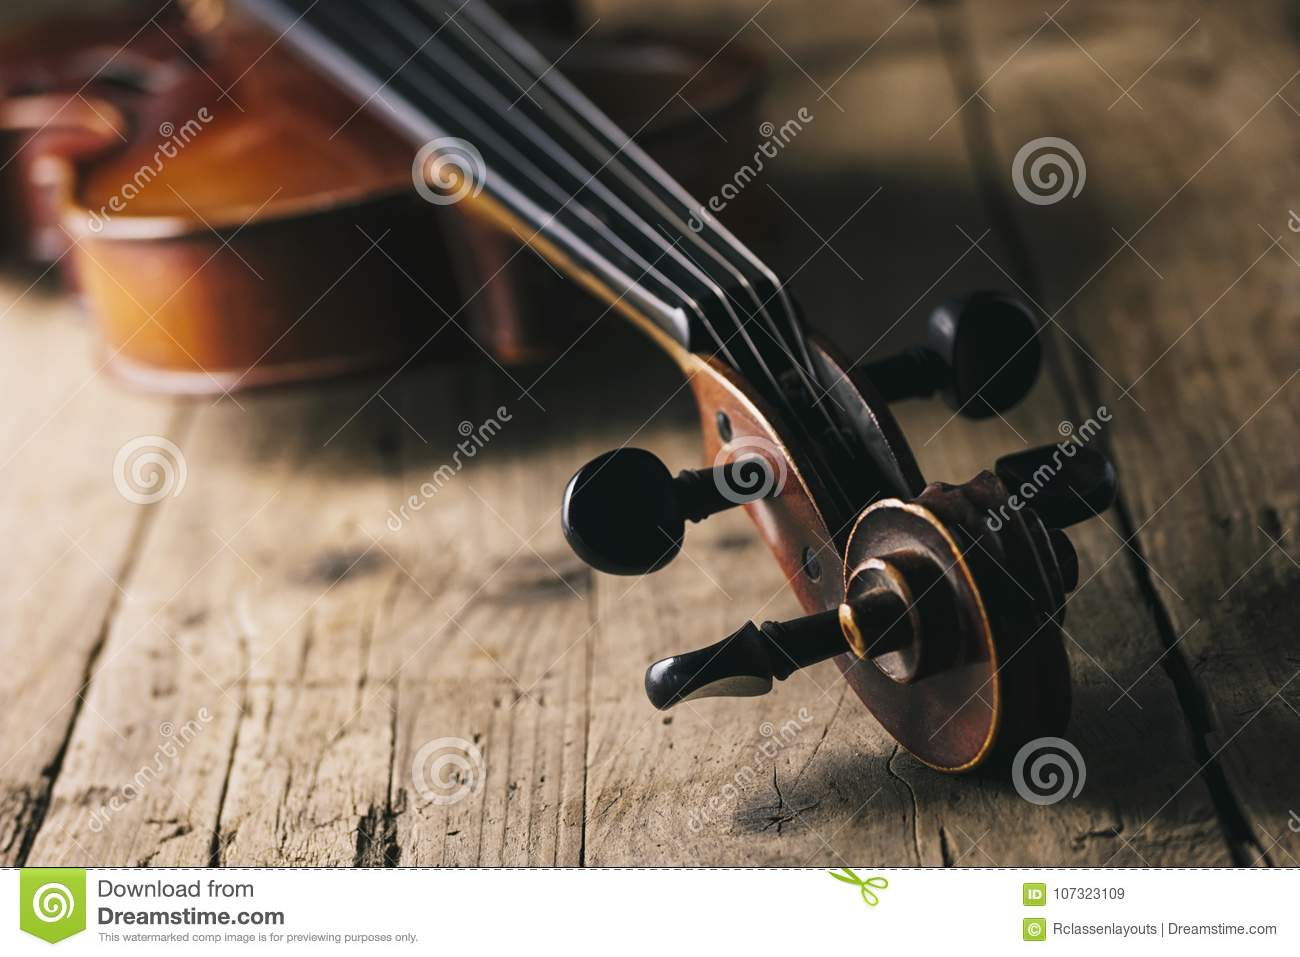 Antique Violin On A Wooden Floor Stock Image Image Of Play